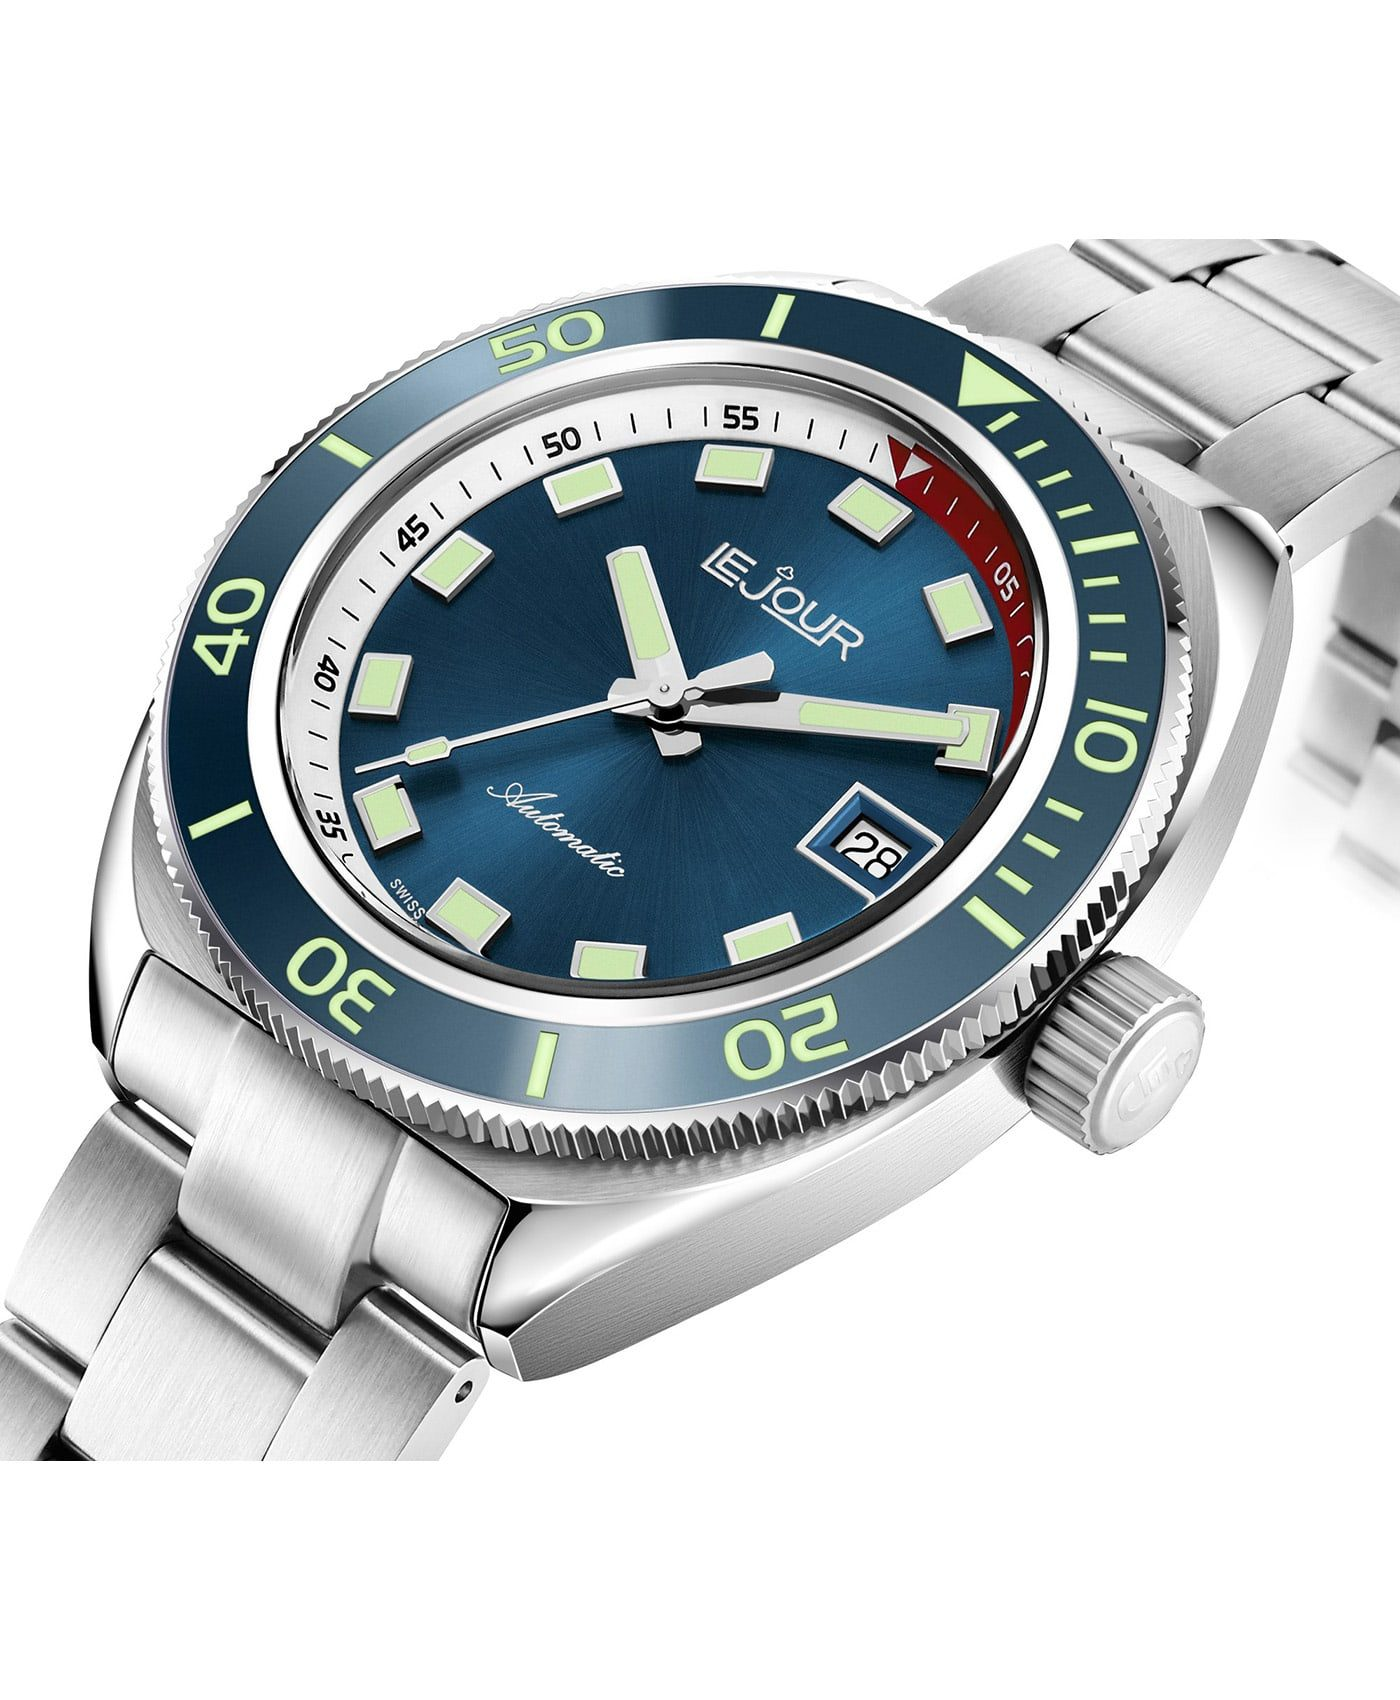 LeJour Hammerhead dive watch HH-0012side case